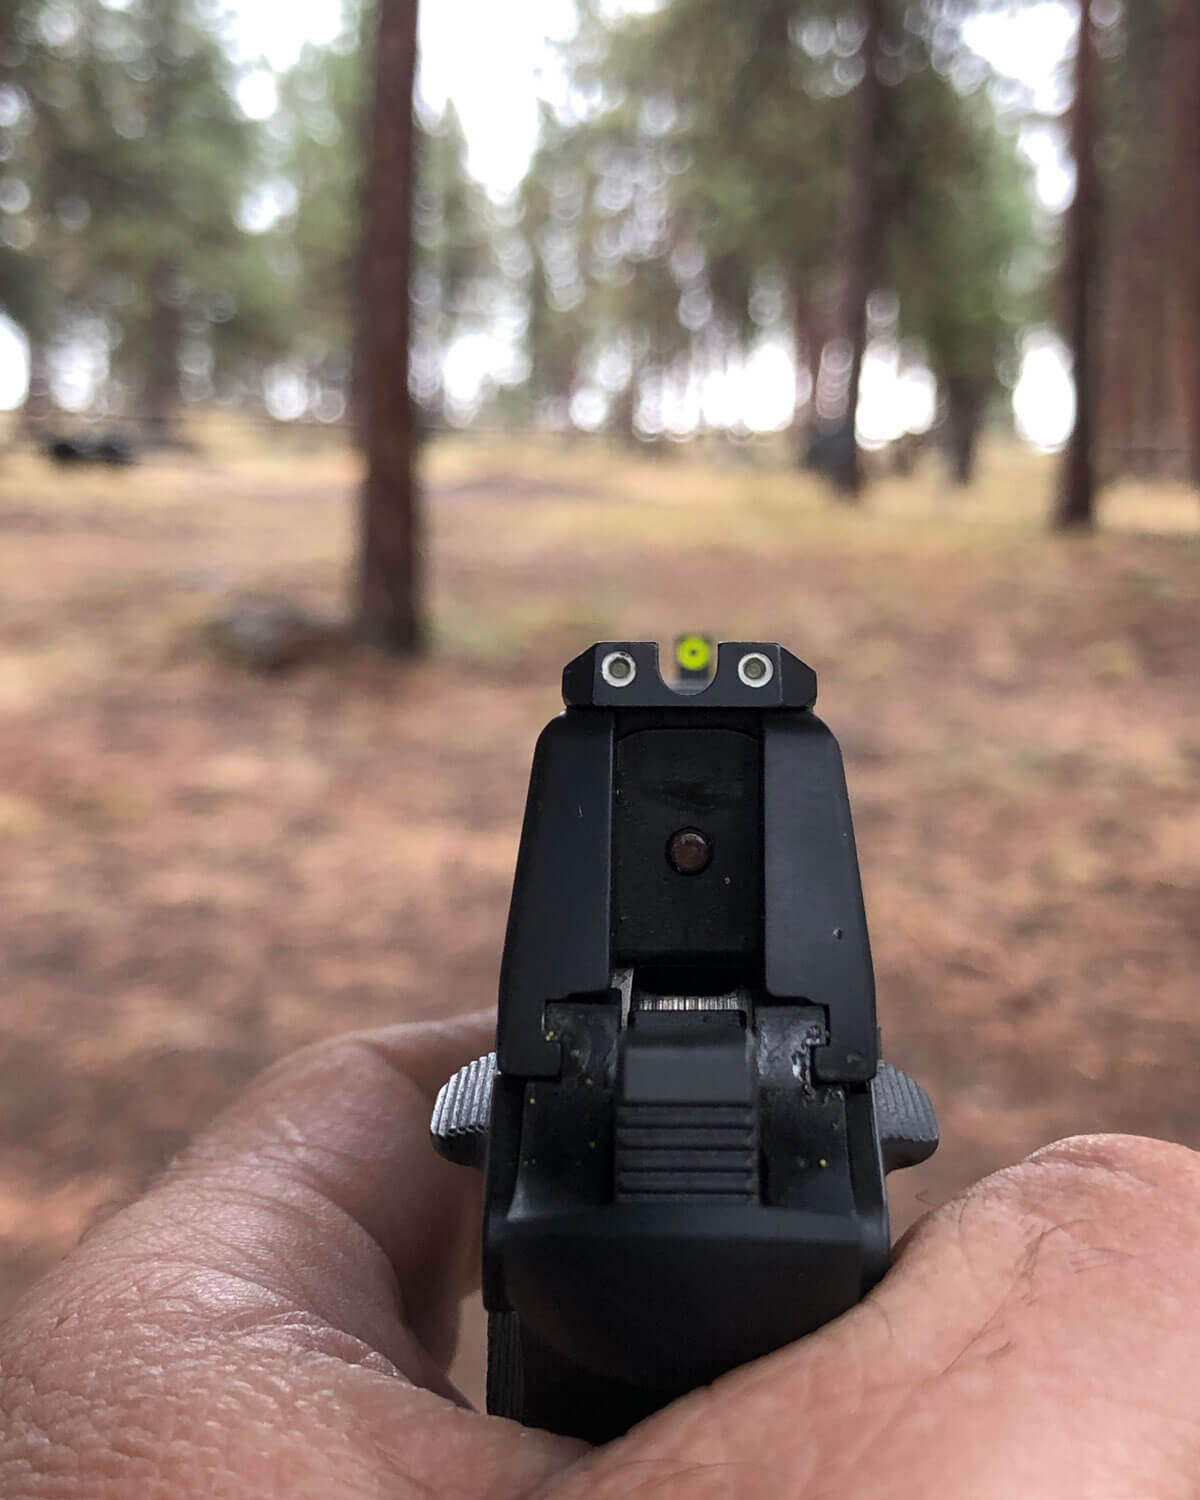 Sight alignment is critical when shooting long range targets with the Springfield 911